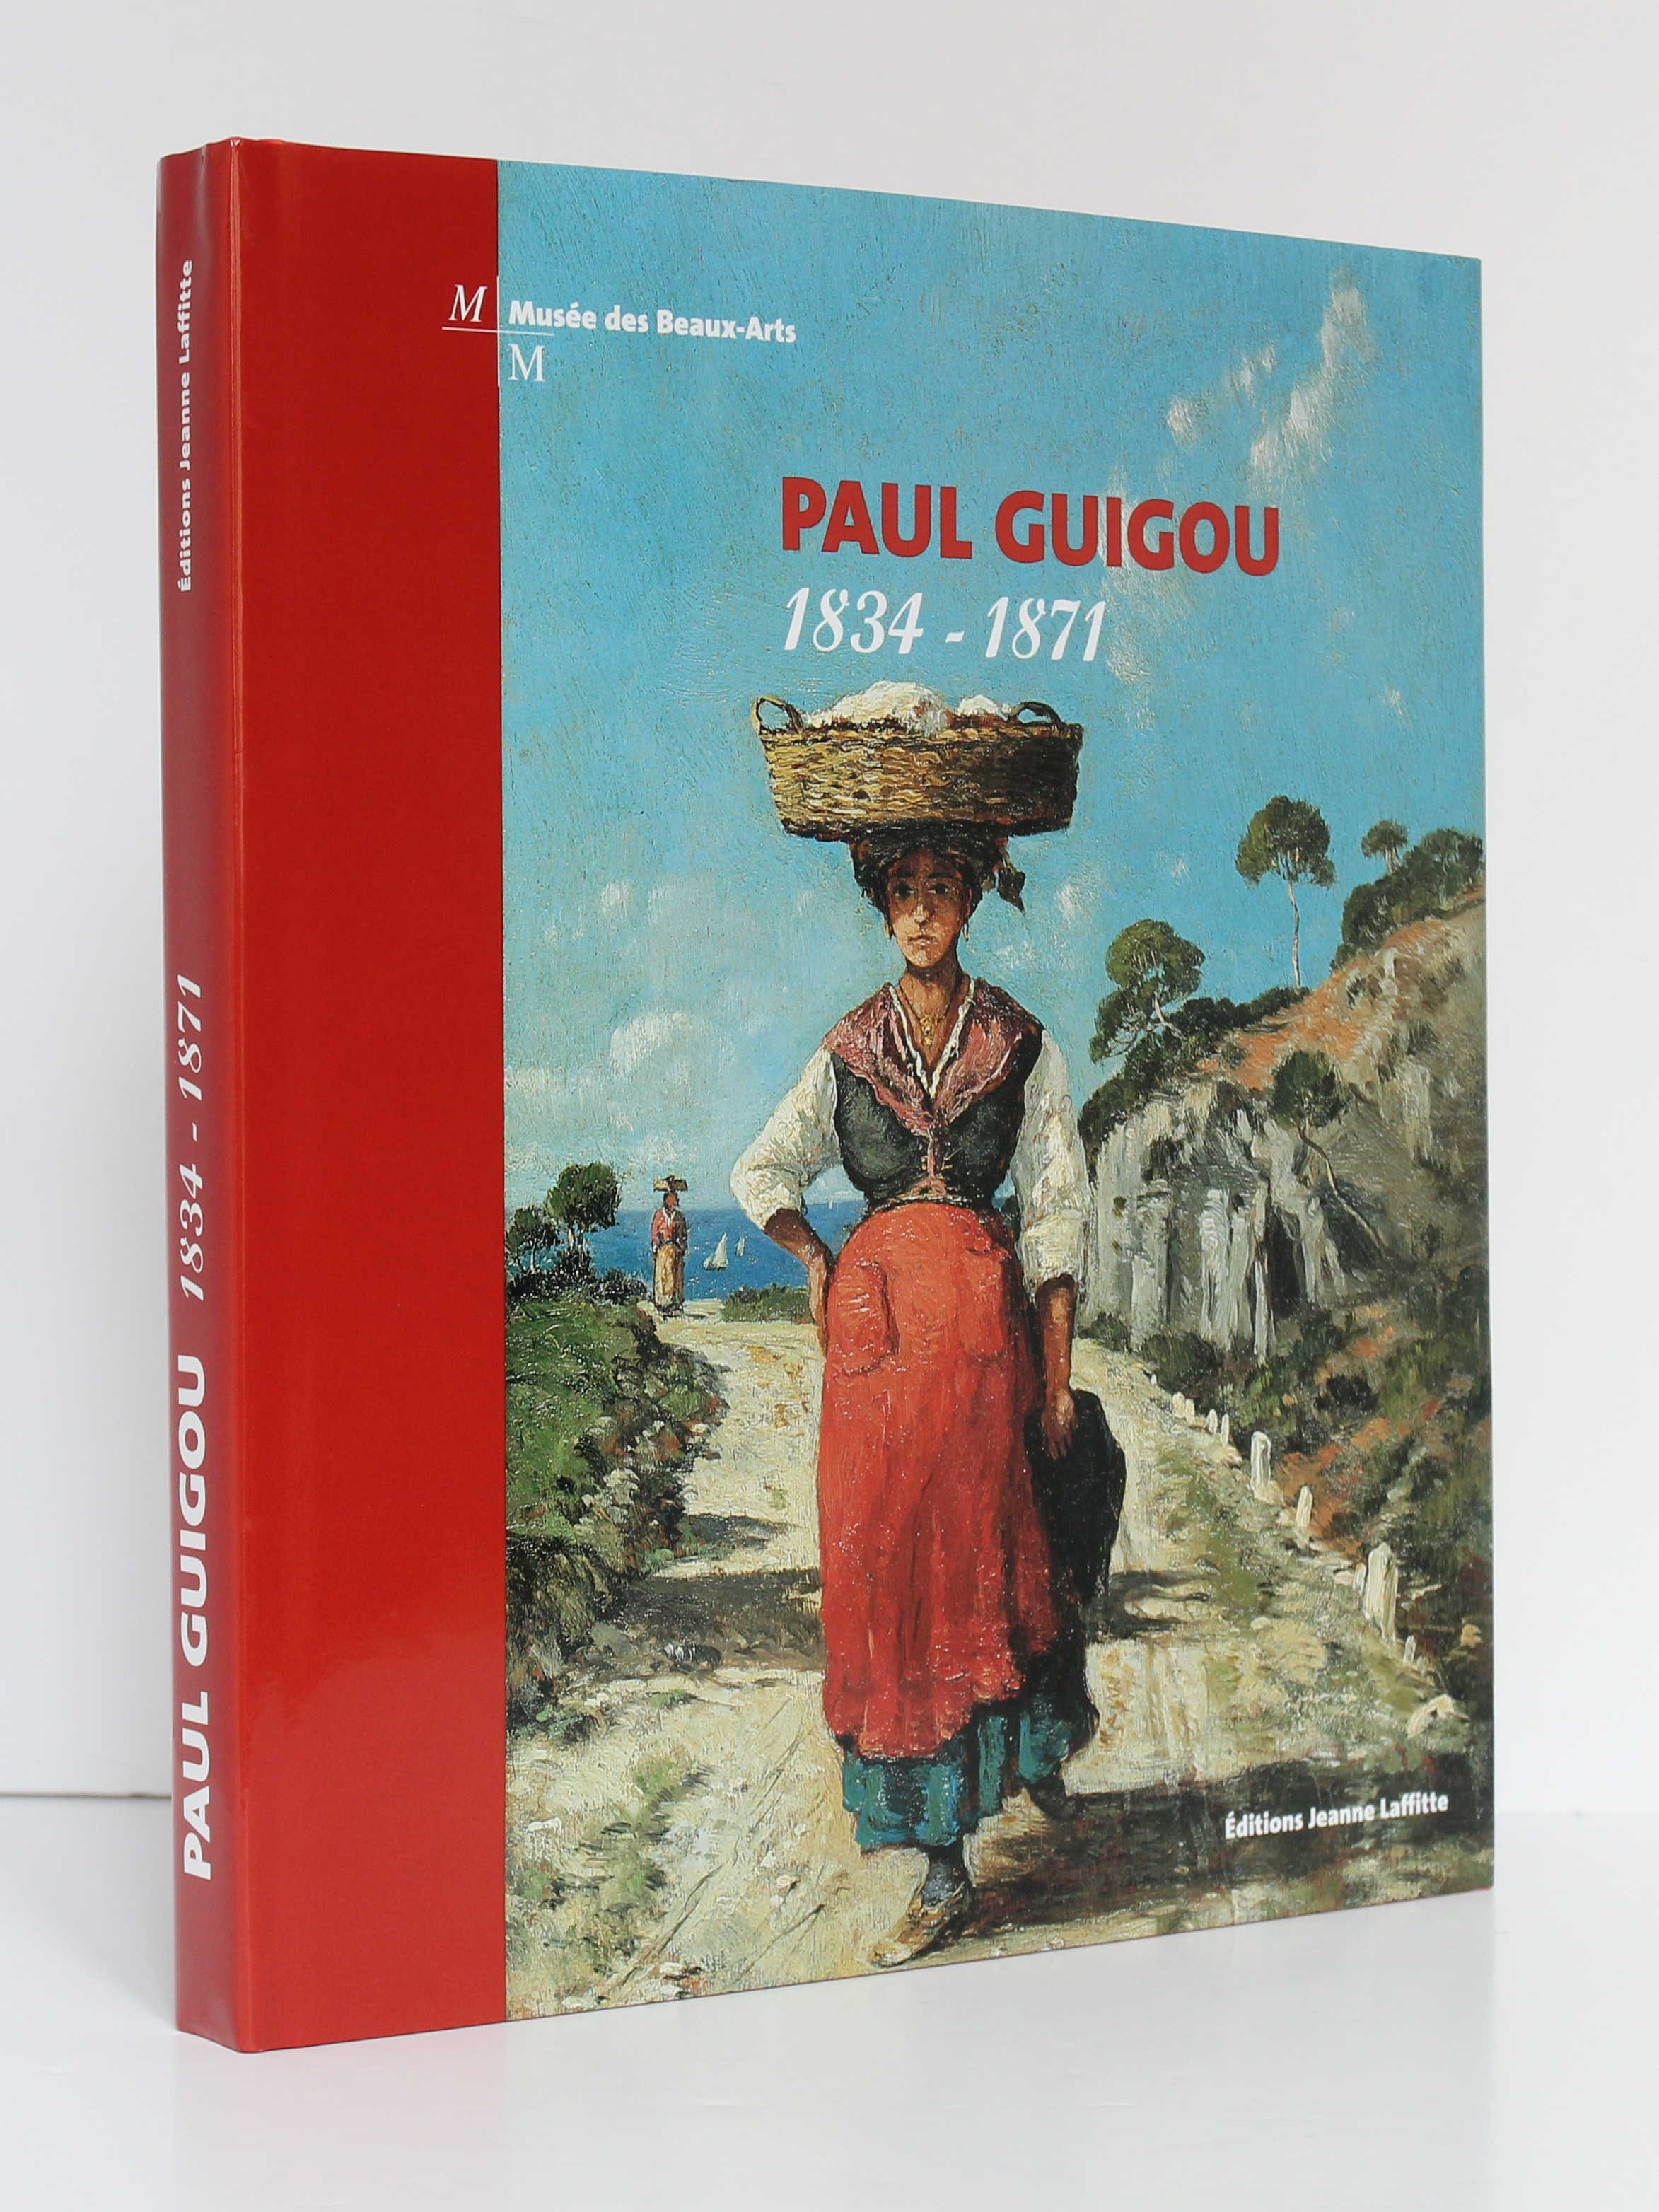 Paul Guigou, 1834-1871. Catalogue de l'exposition rétrospective, Paris-Marseille 2004-2005. Couverture.